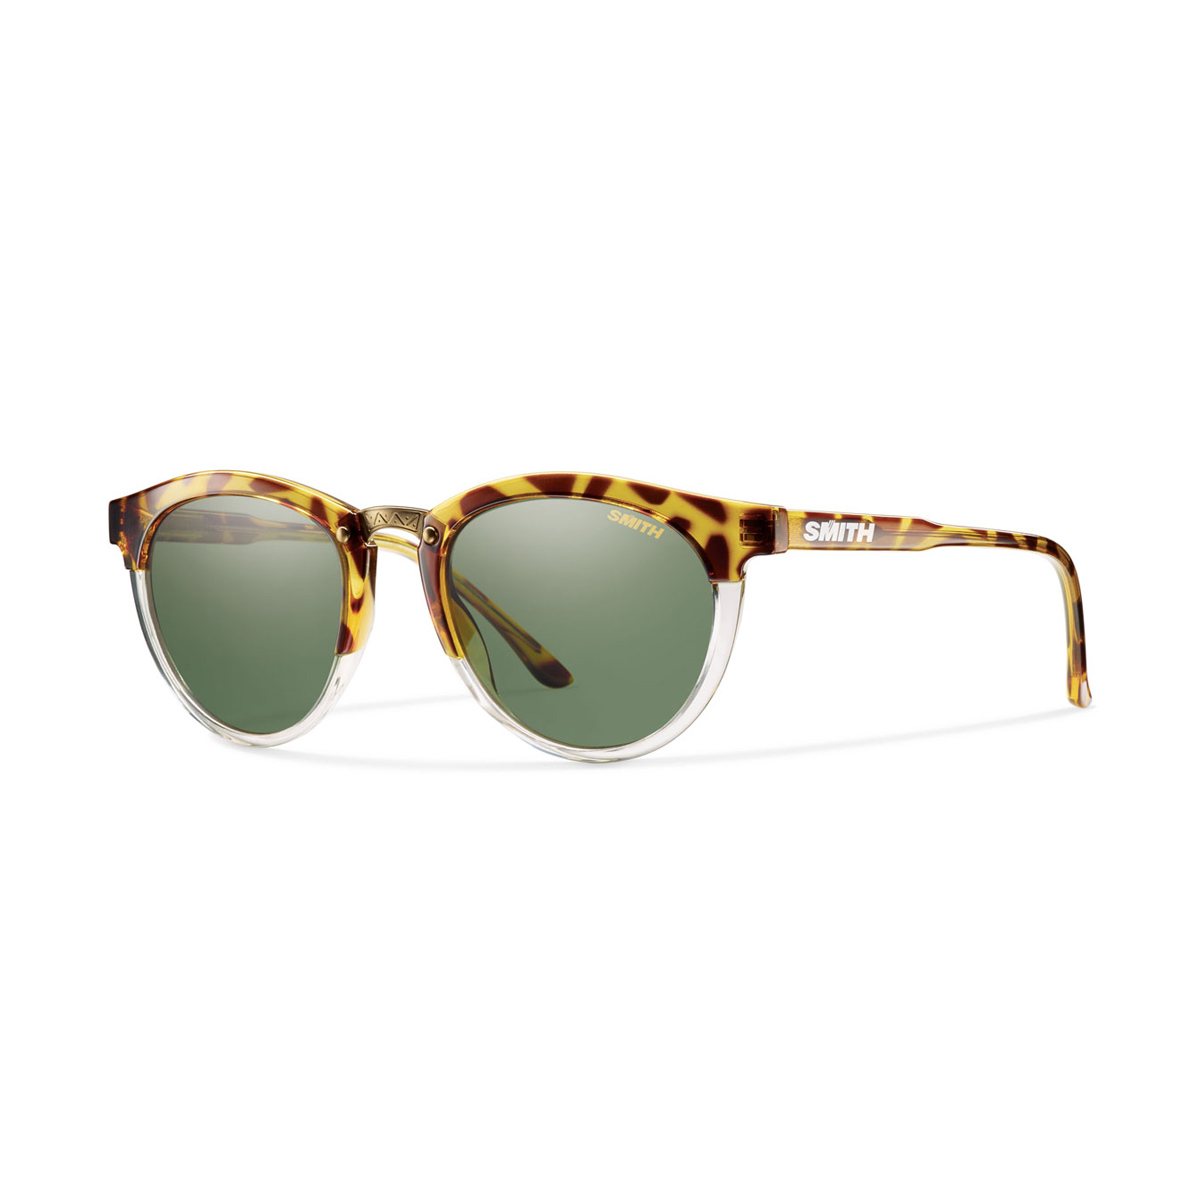 Amber Tortoise with Polarized Gray Green Lens